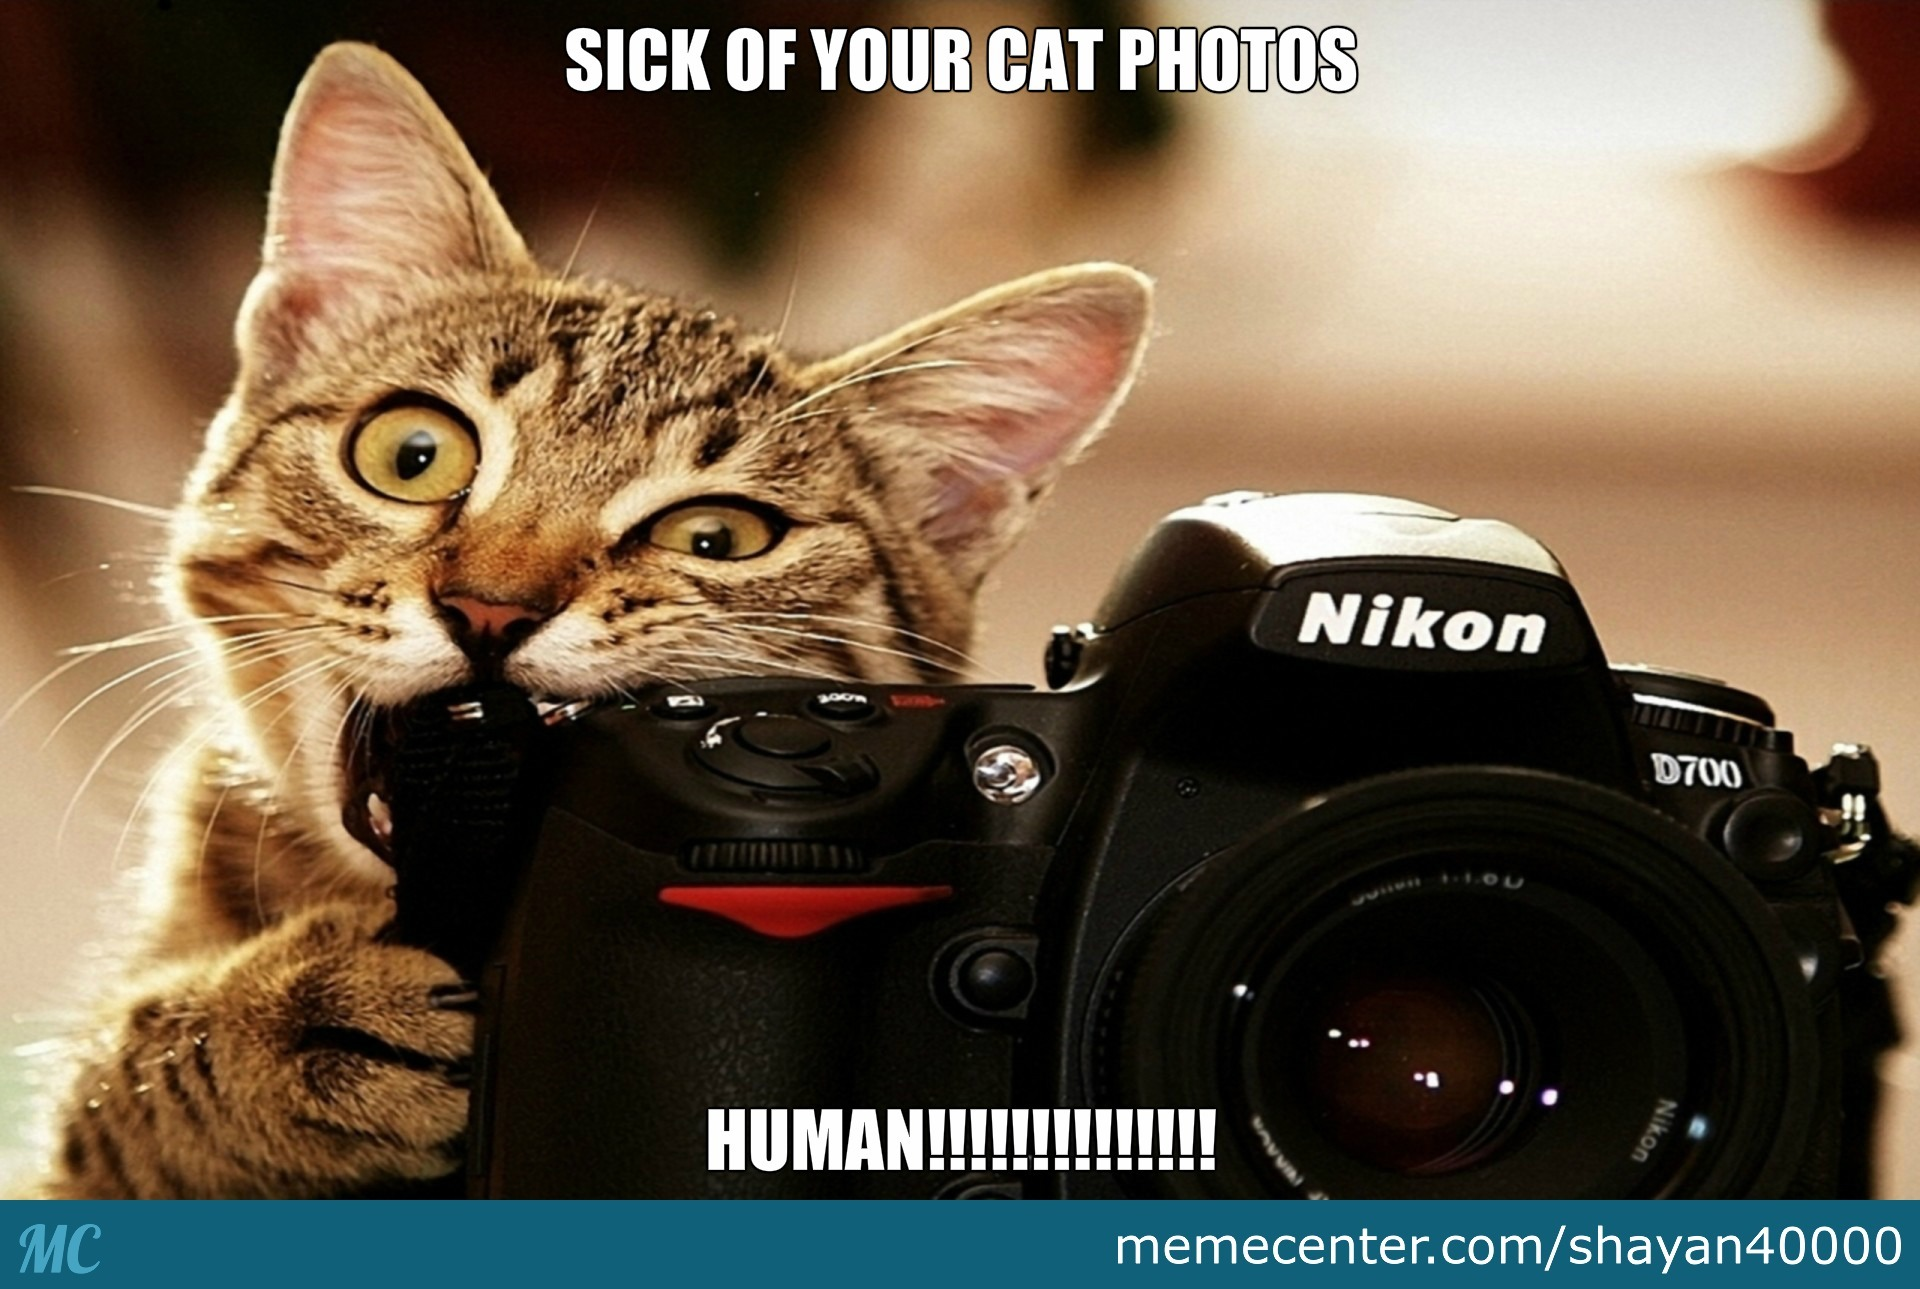 sick of your cat memes human_o_2503009 sick of your cat memes human! by shayan40000 meme center